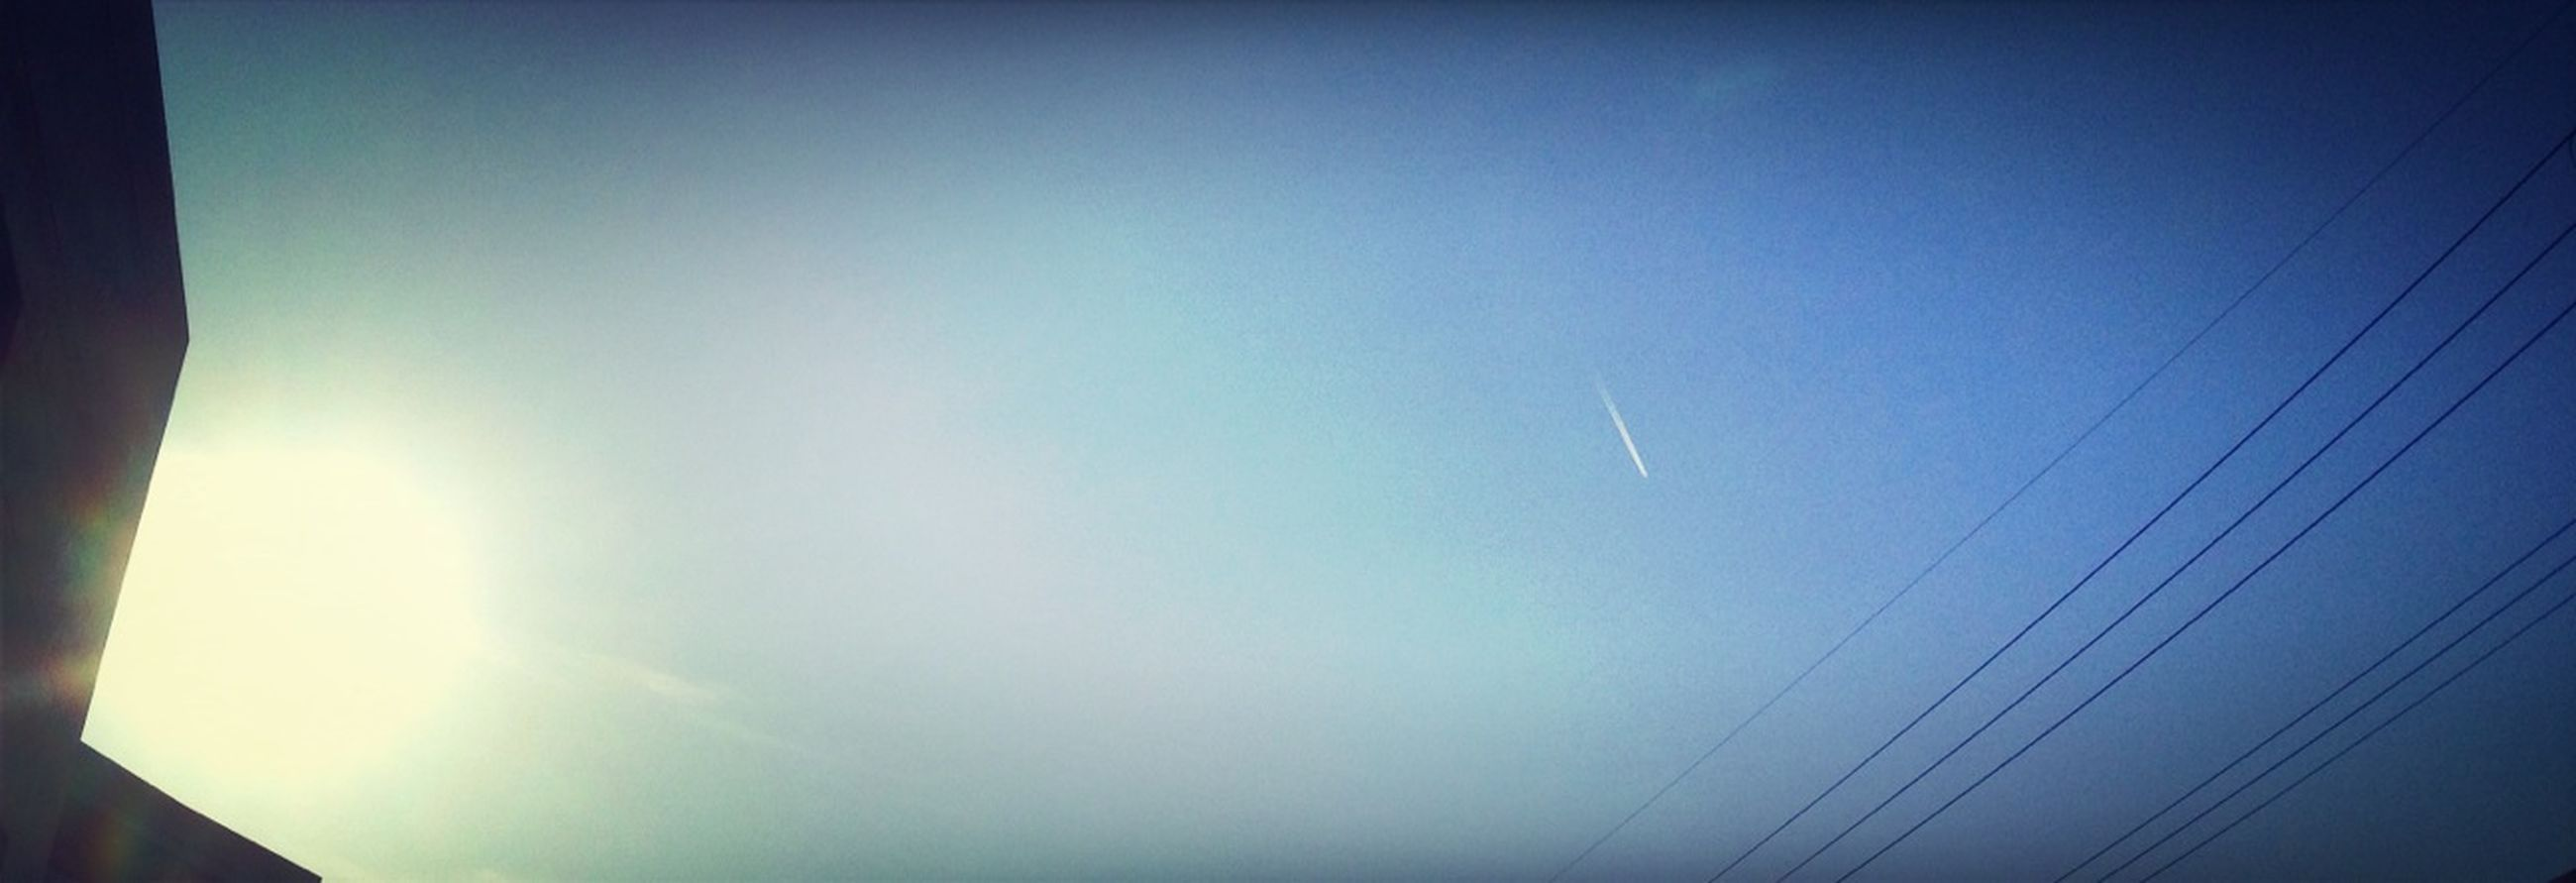 low angle view, sky, blue, silhouette, copy space, sun, clear sky, power line, electricity, vapor trail, cable, sunbeam, connection, nature, sunlight, beauty in nature, outdoors, no people, scenics, tranquility